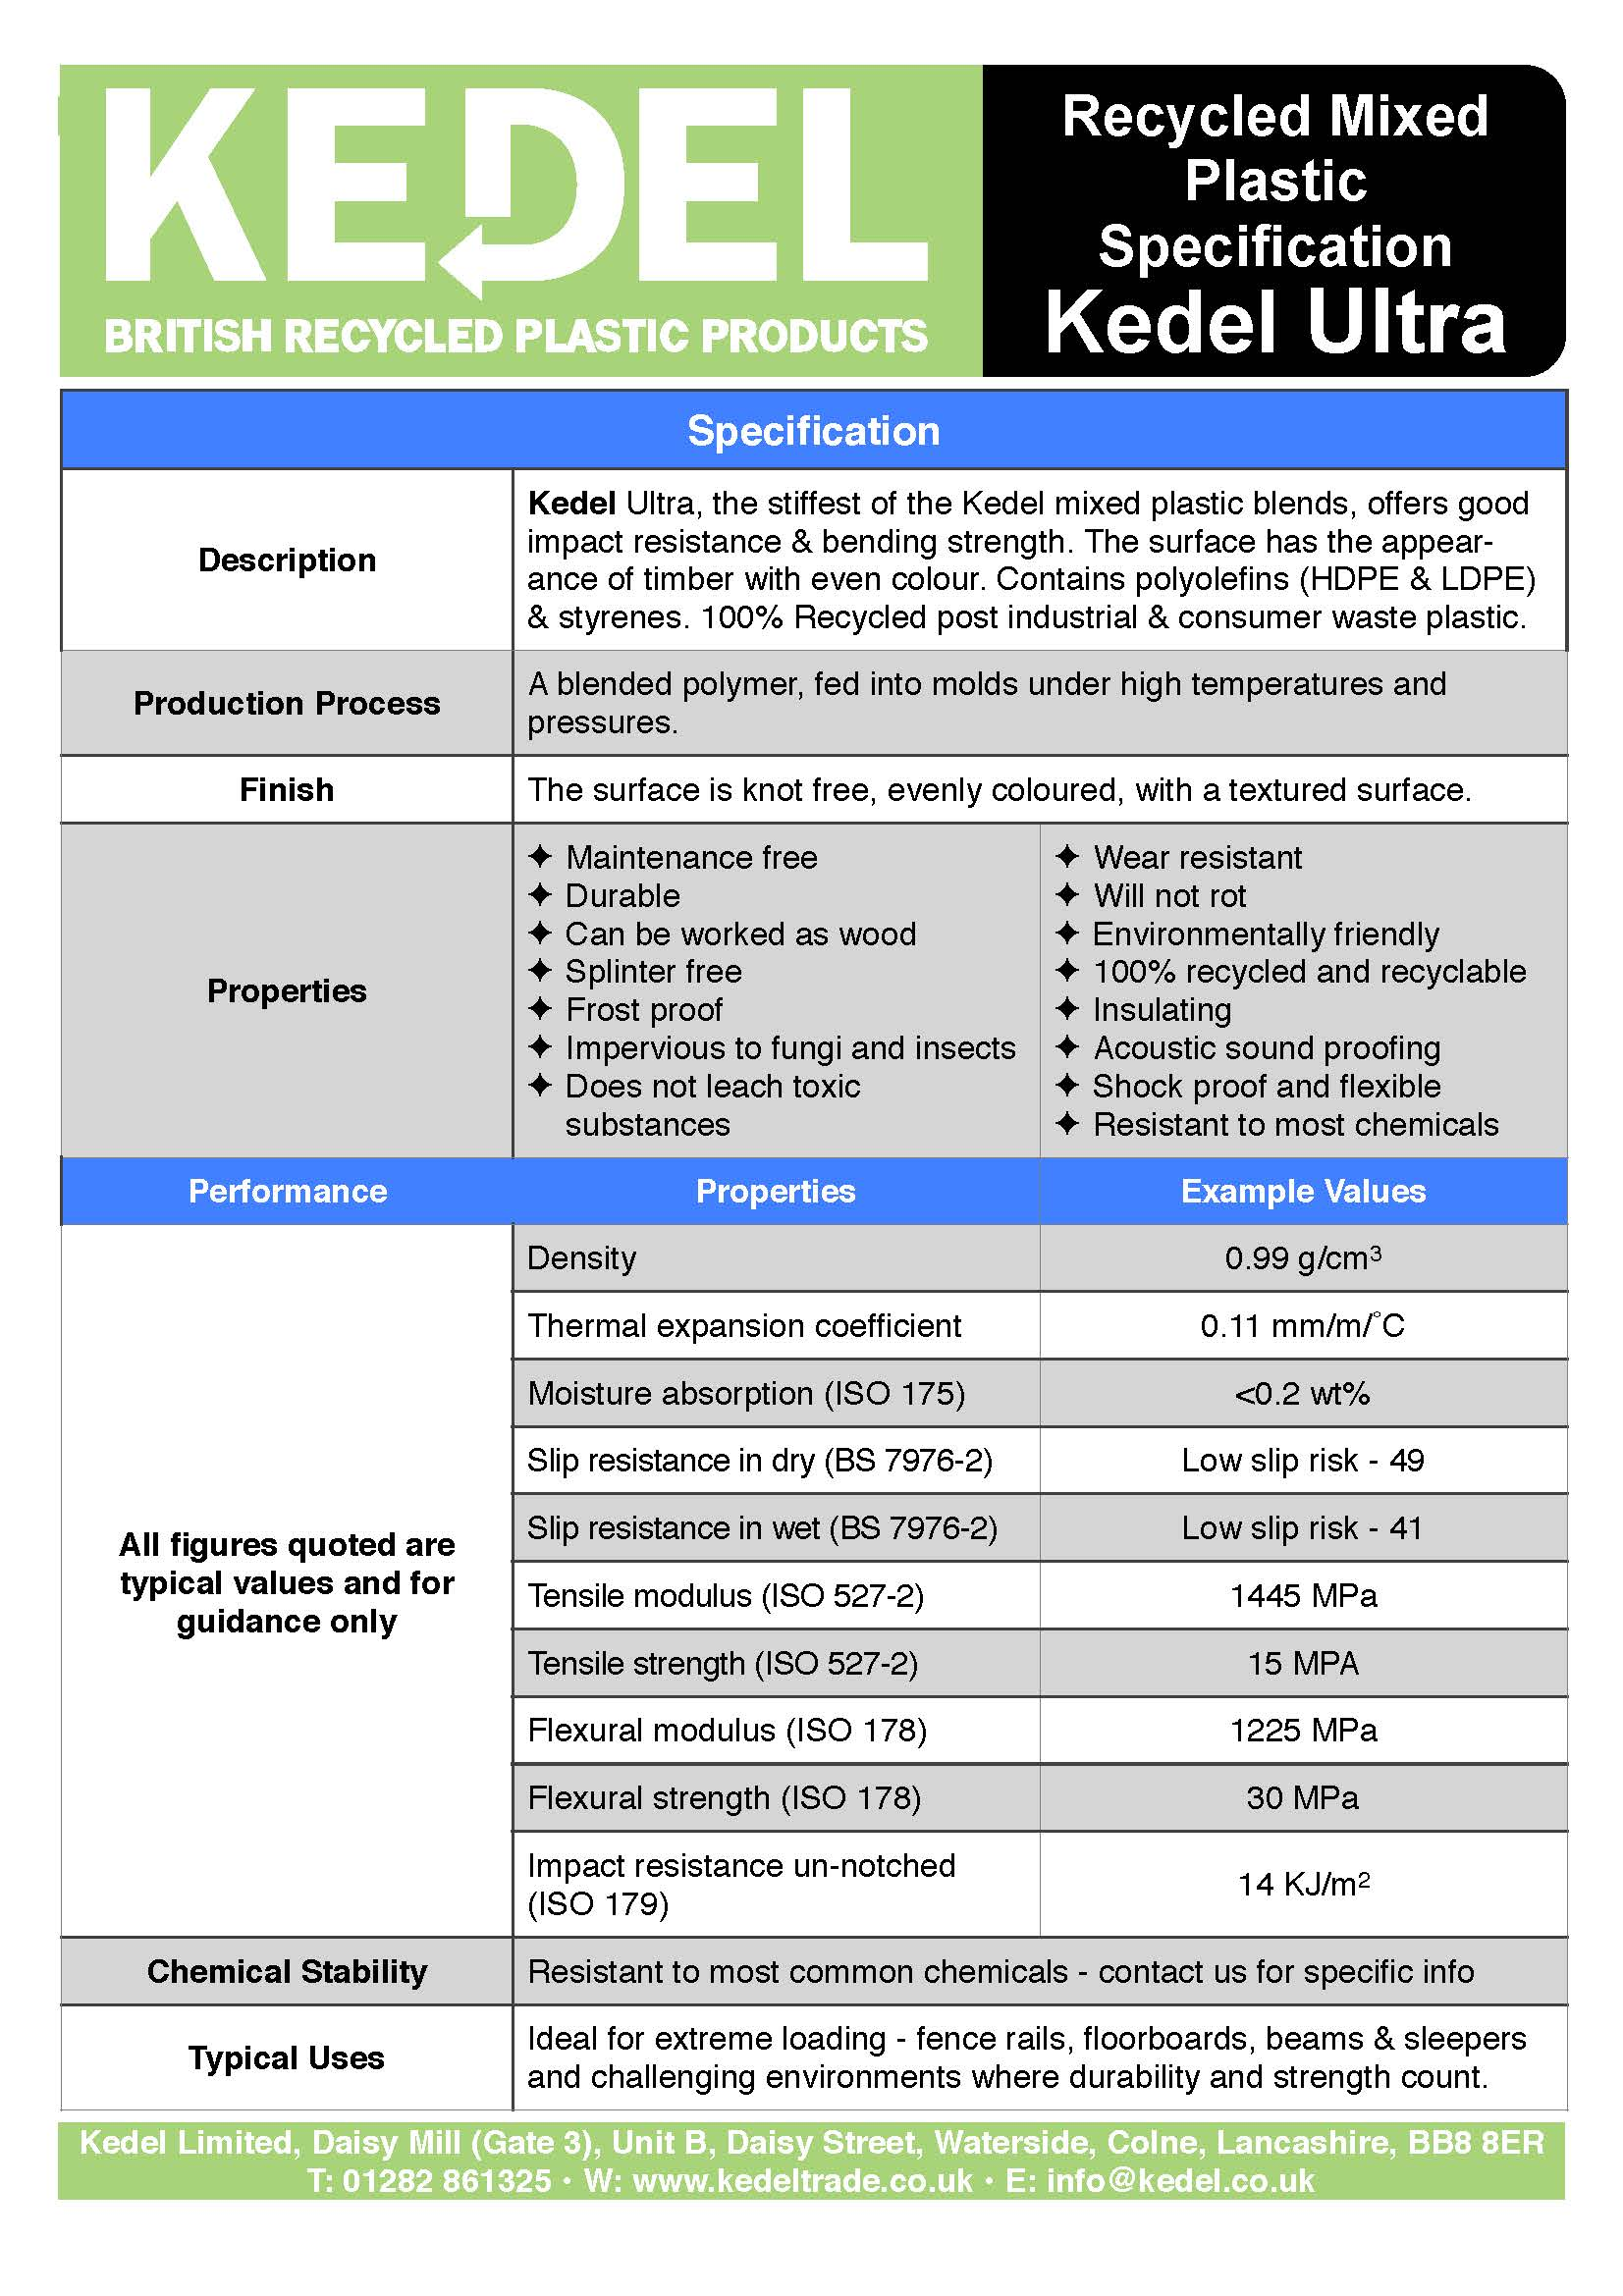 Kedel Recycled Plastic Products Technical Specification